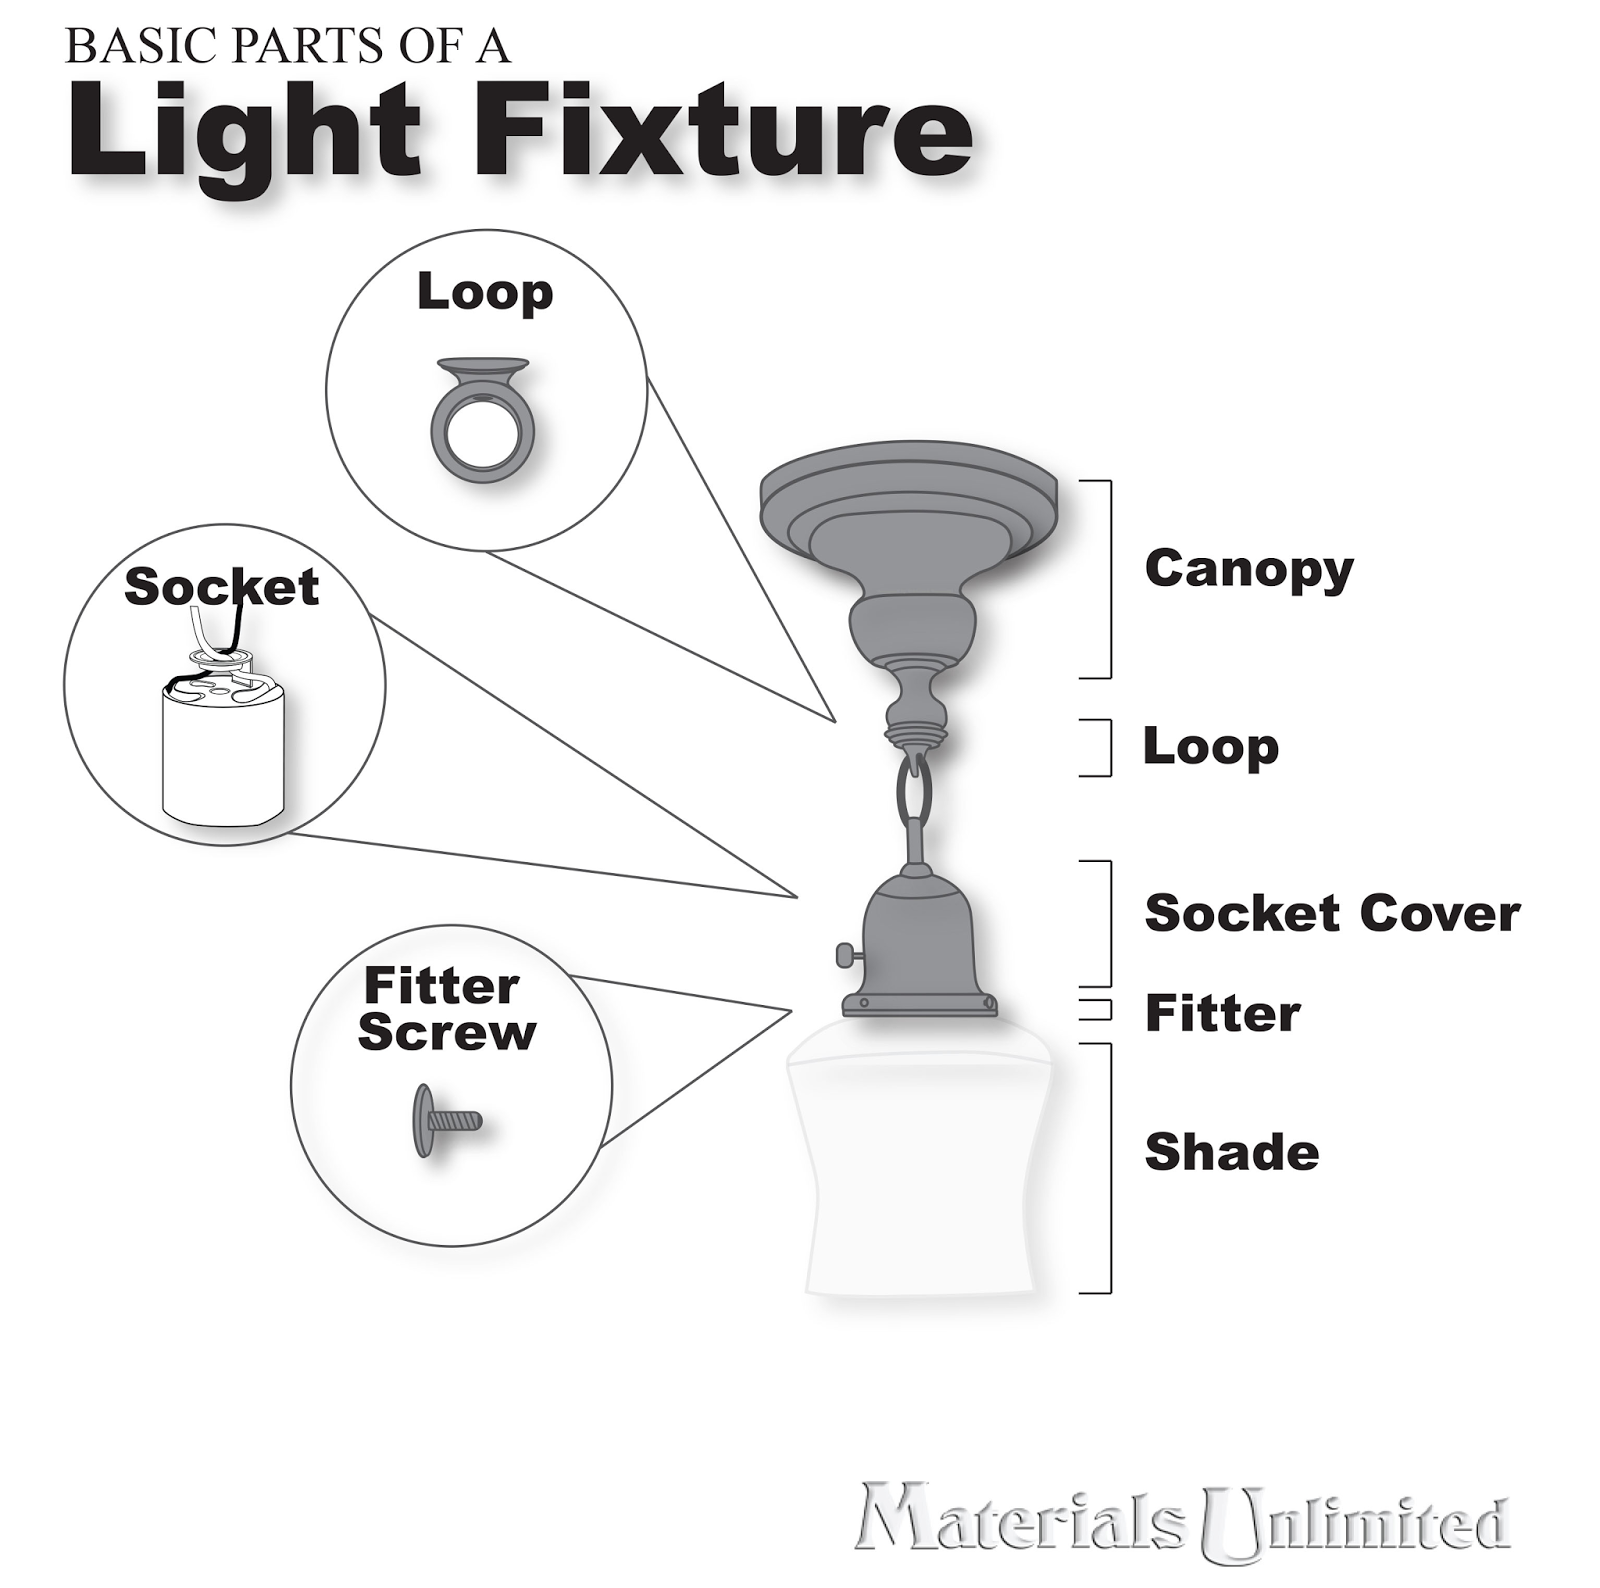 Basic parts of a light fixture made easy in this diagraminfographic basic parts of a light fixture made easy in this diagraminfographic light arubaitofo Gallery